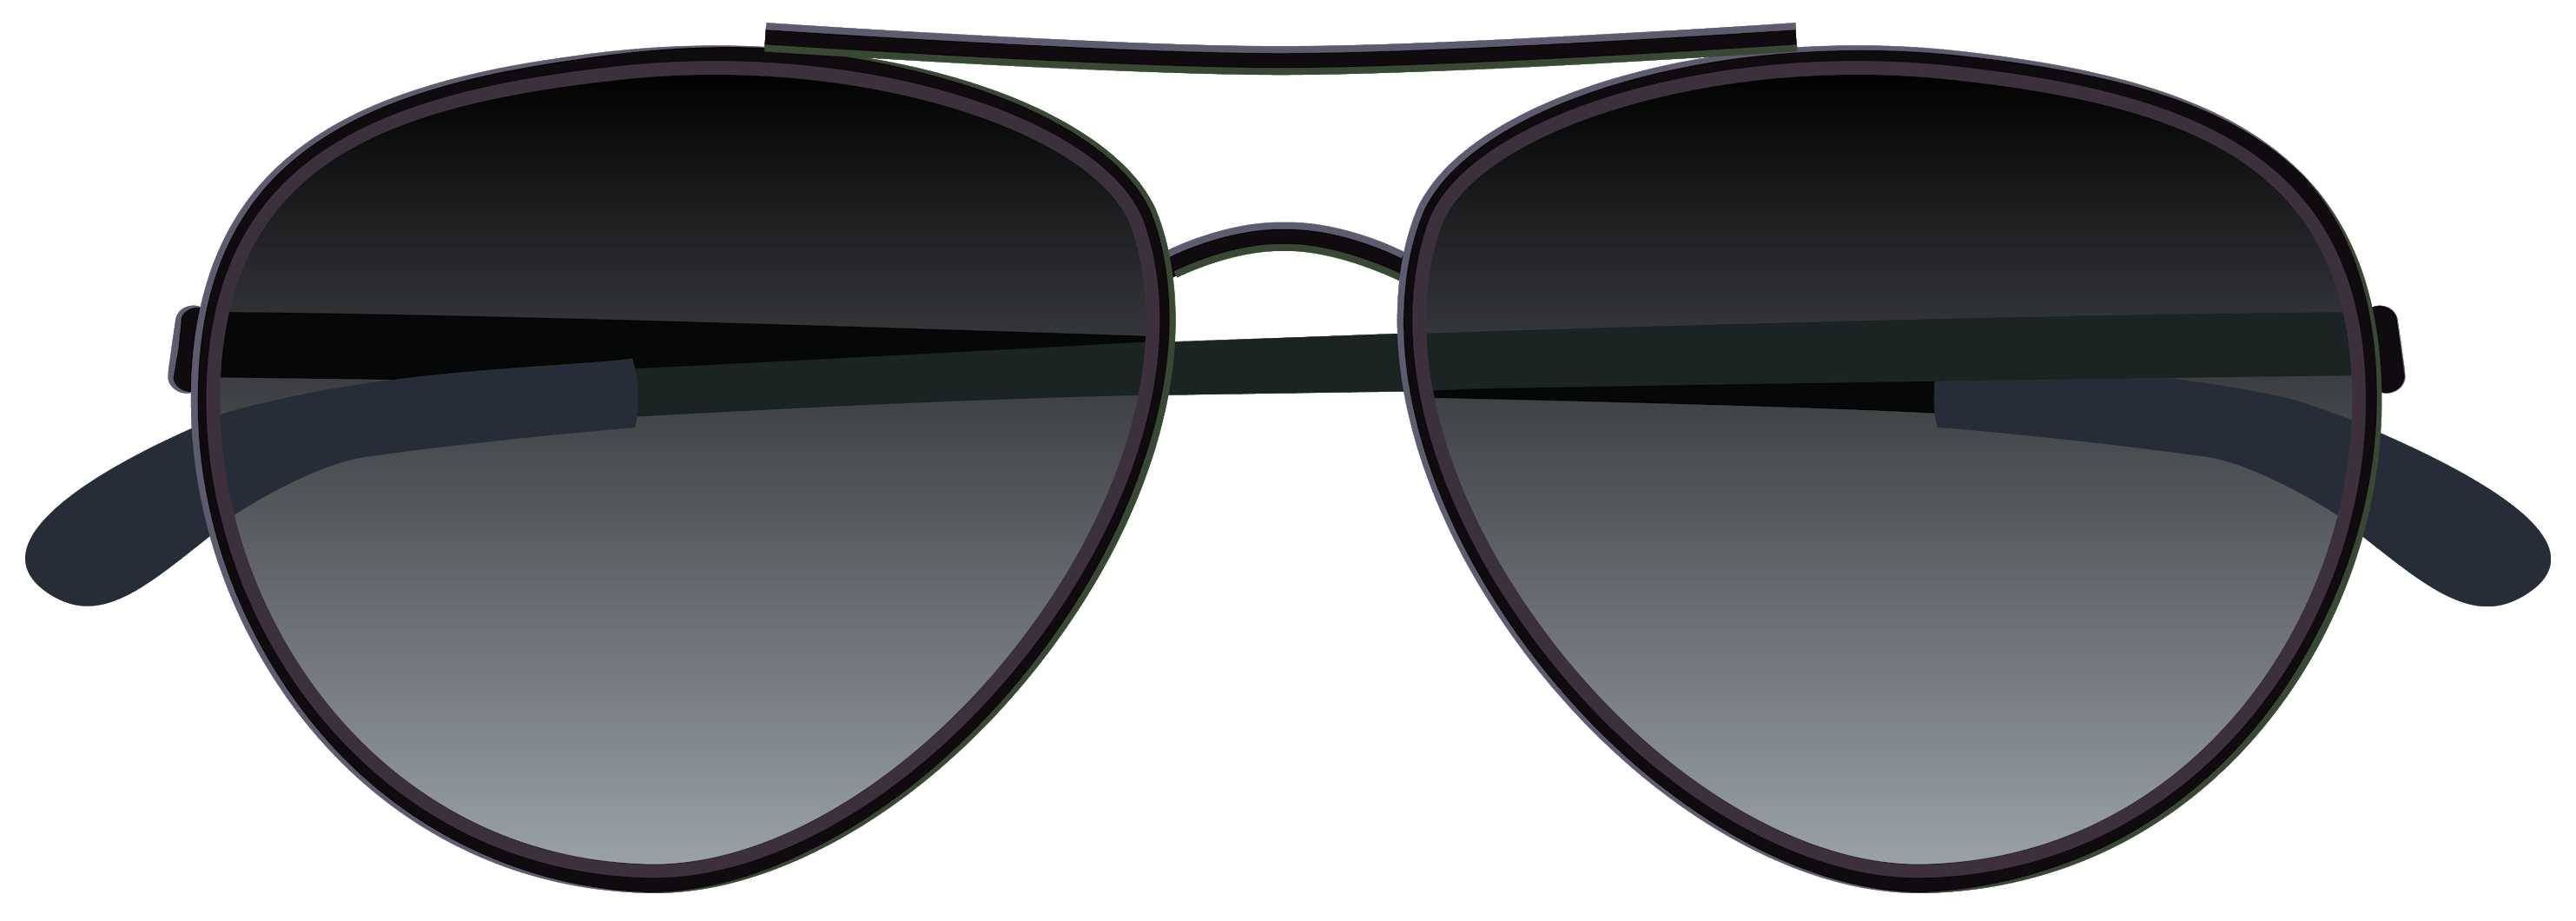 Glasses Transparent Background Glasses Png Image Free Sunglasses Sun With Sunglasses Clip On Sunglasses